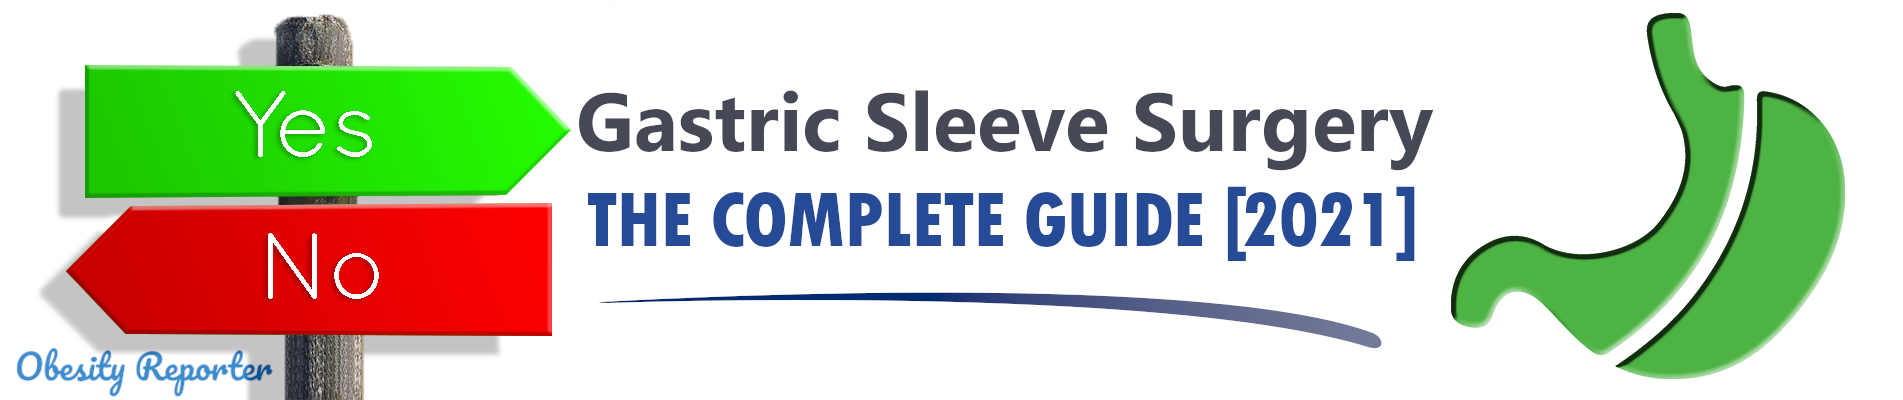 Gastric Sleeve Surgery - The Complete Guide